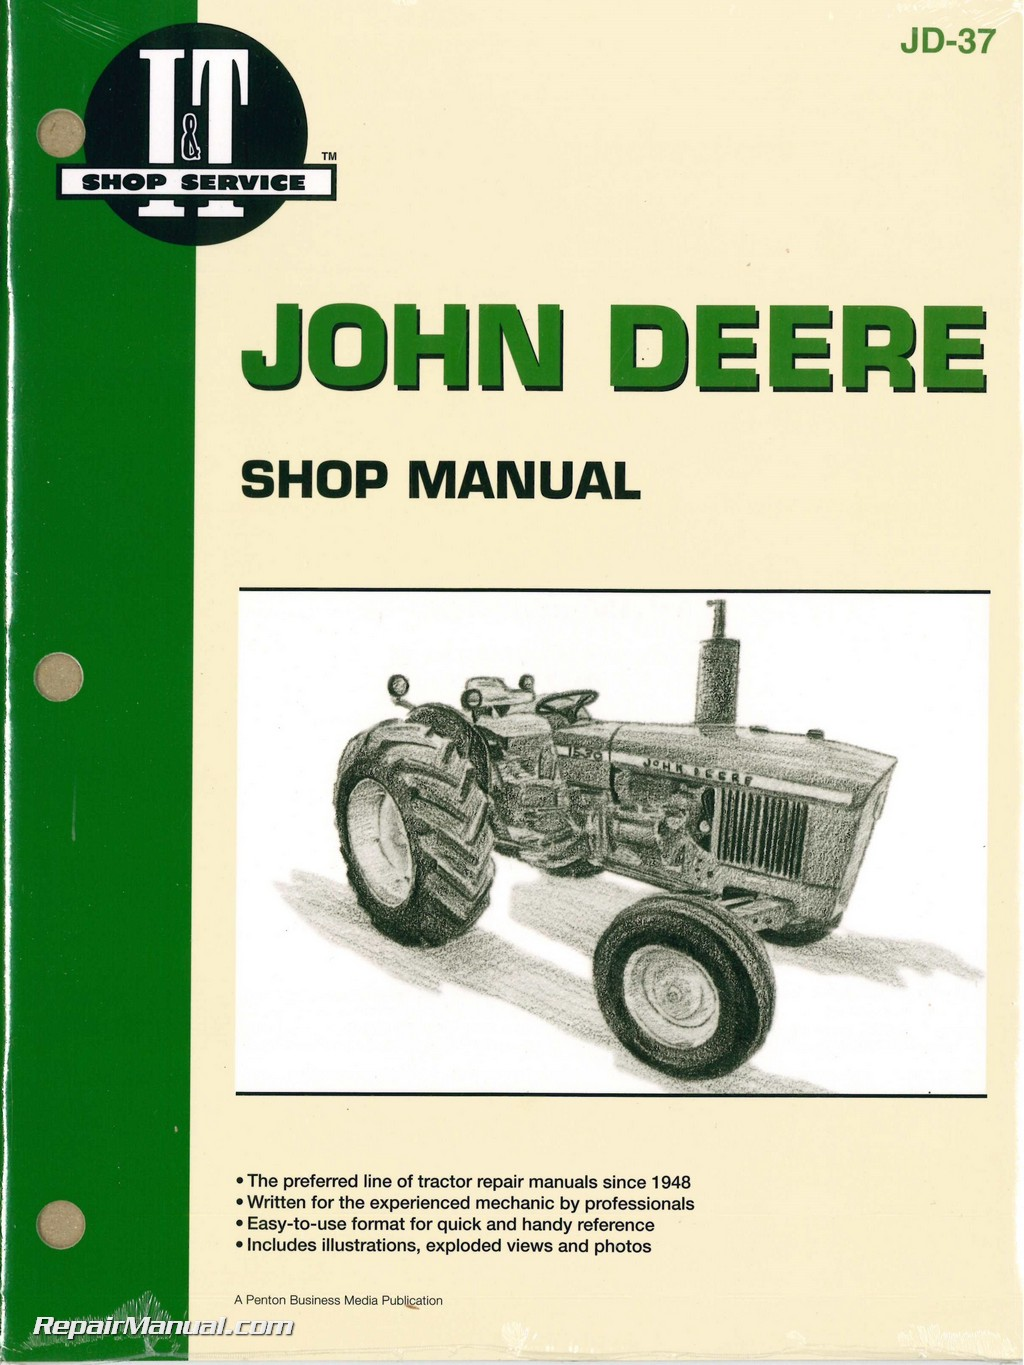 John Deere 990 Wiring Diagram Posts Diesel 4500 Tractor Fuse Box 1020 1520 1530 2020 2030 Workshop Manual Ignition Switch